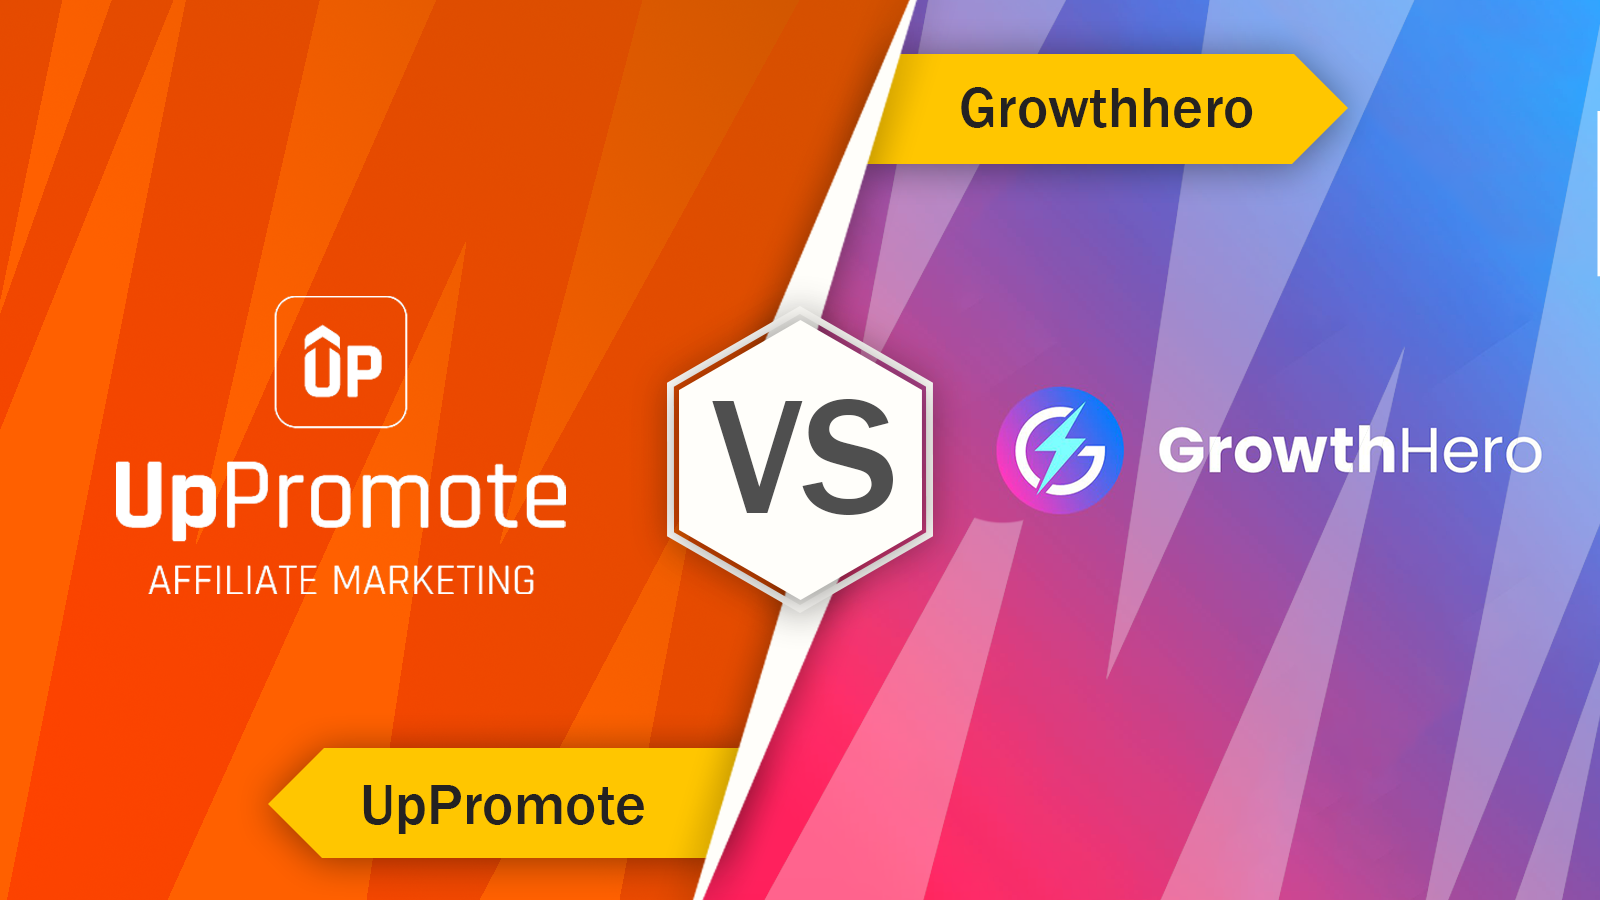 UpPromote: A better alternative to GrowthHero for all-size businesses